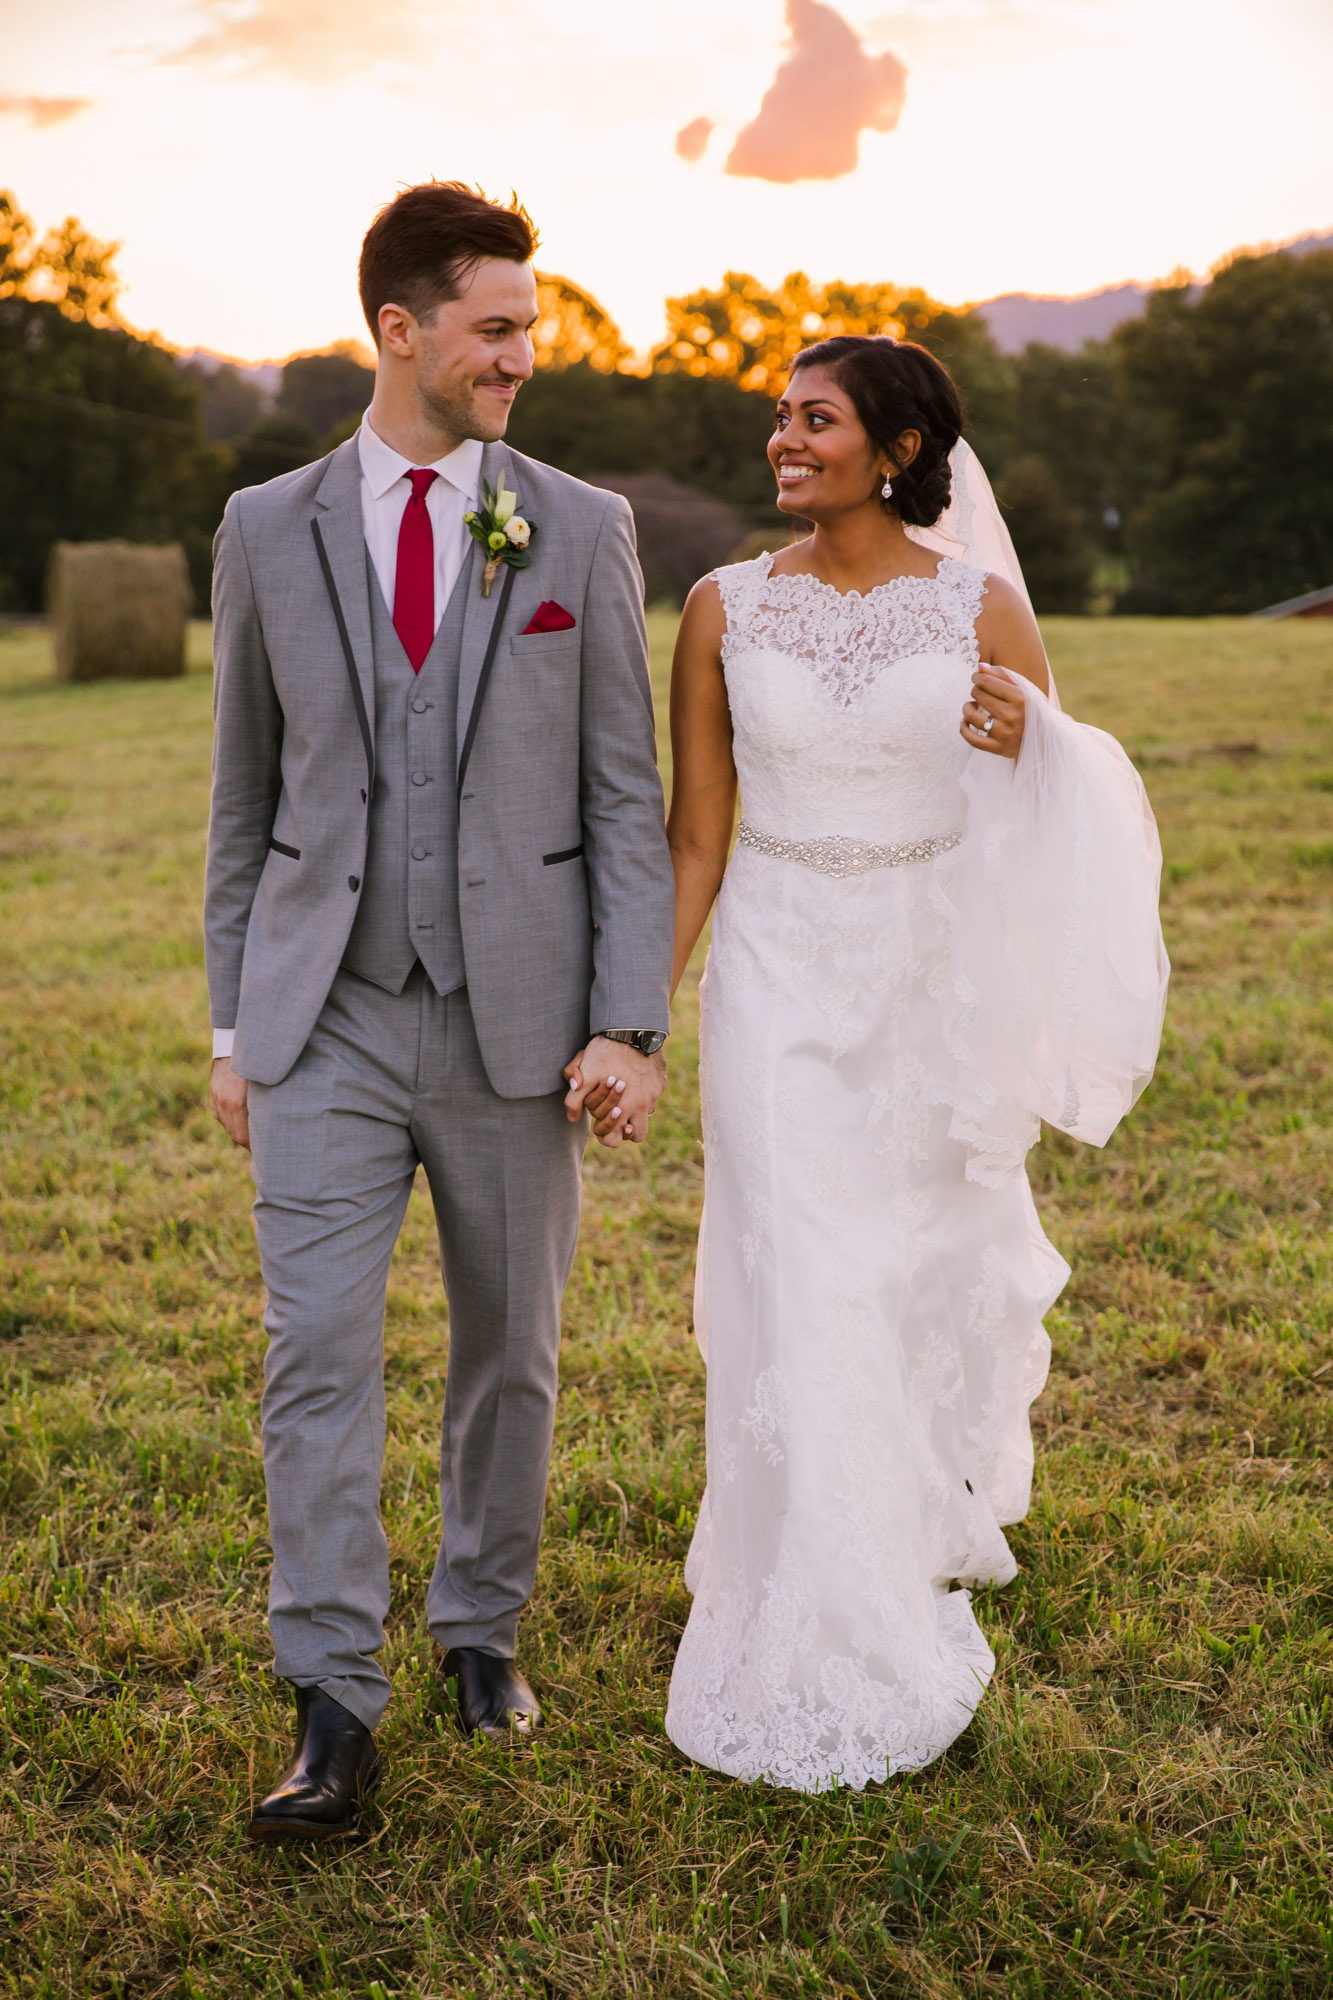 Waynesville NC Wedding Photography | Bride and Groom Smiling at Sunset